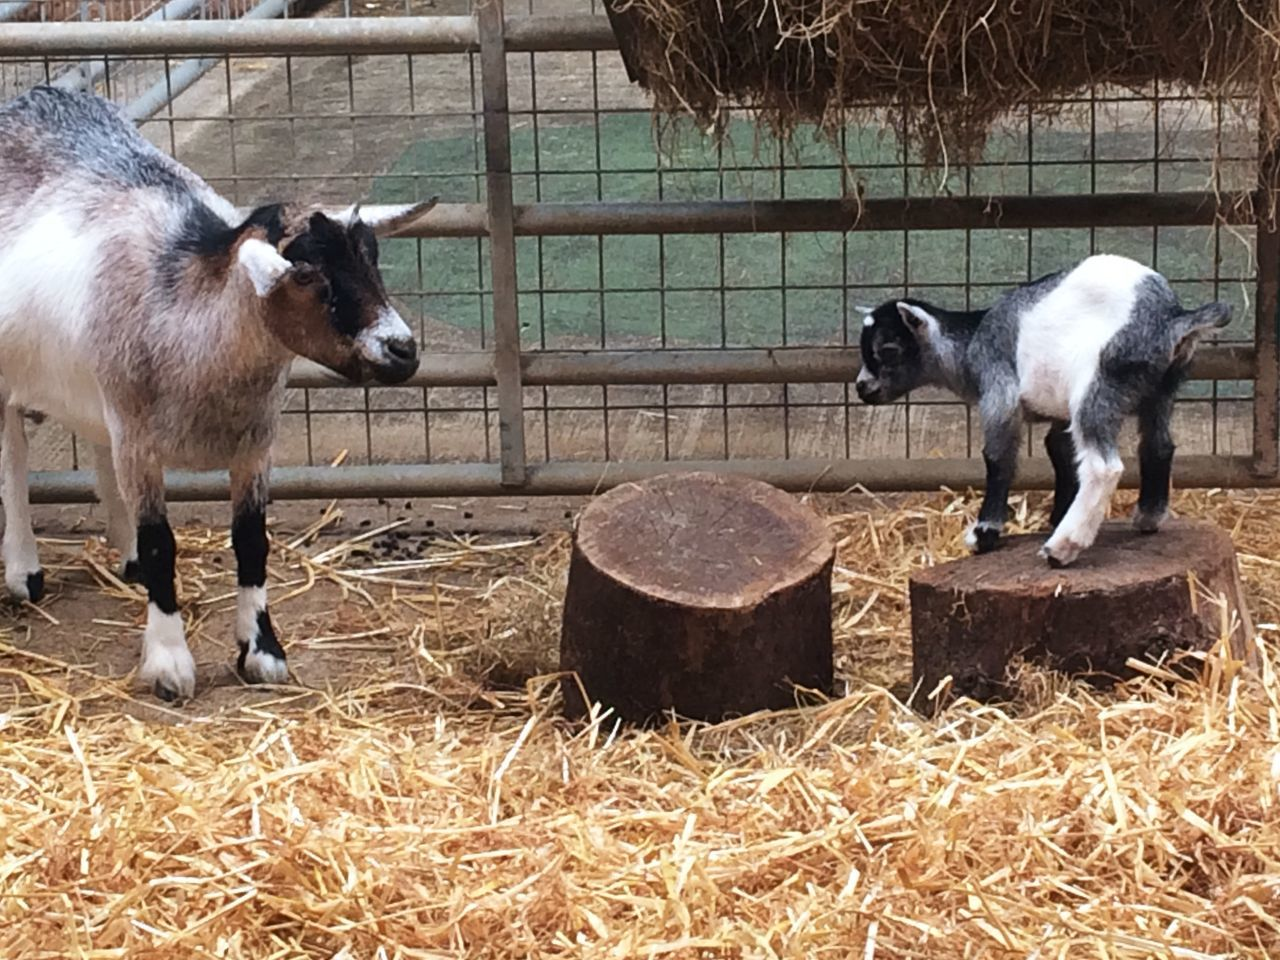 Nanny goat and her kid. Farm Animals Zoo Goat